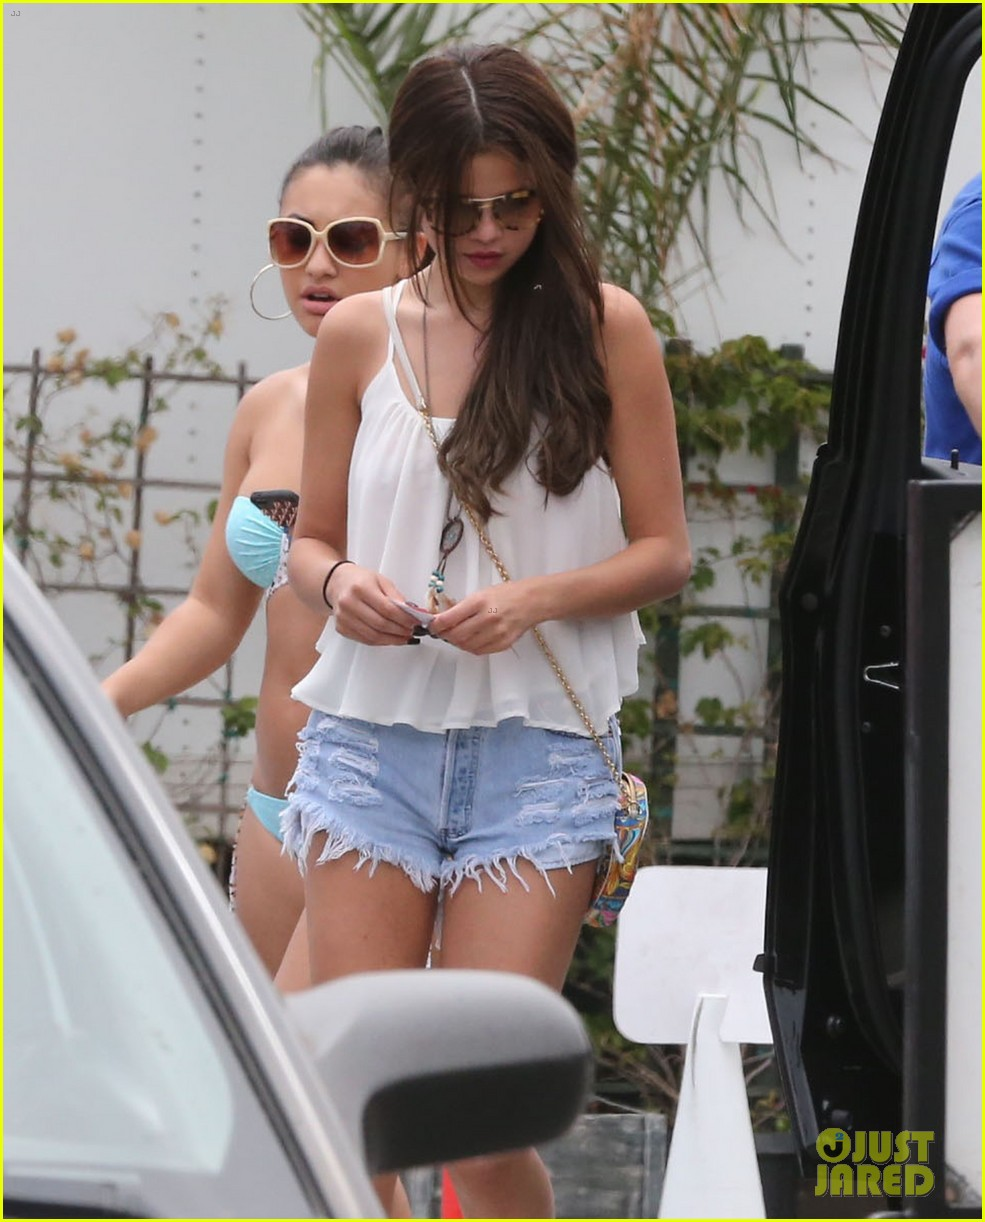 Francia Raisa And Selena Gomez Beach Selena Gomez Francia Raisa